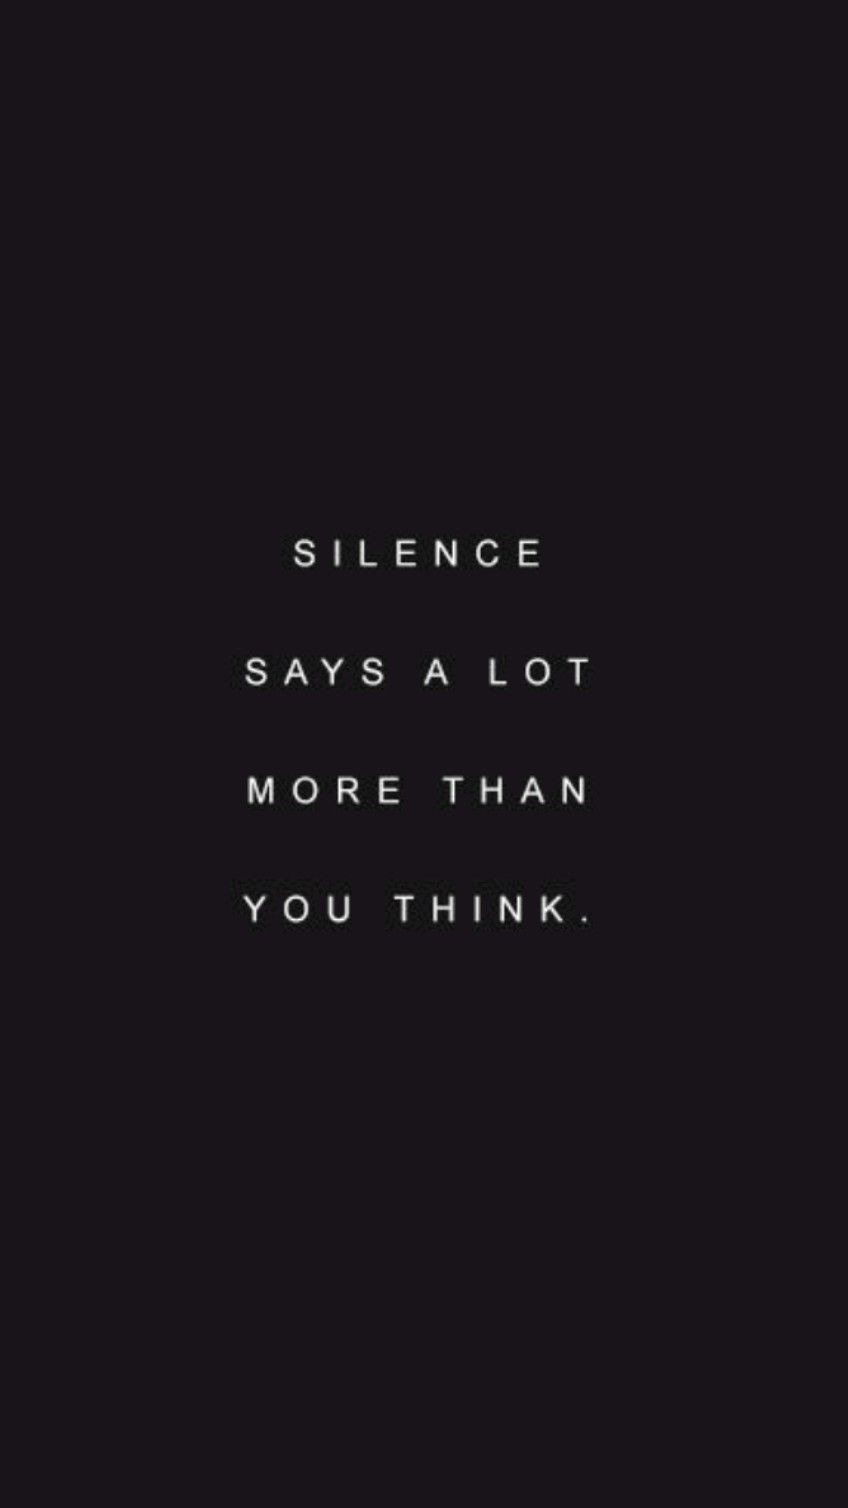 SILENCE IS BLISS SOMETIMES 💙